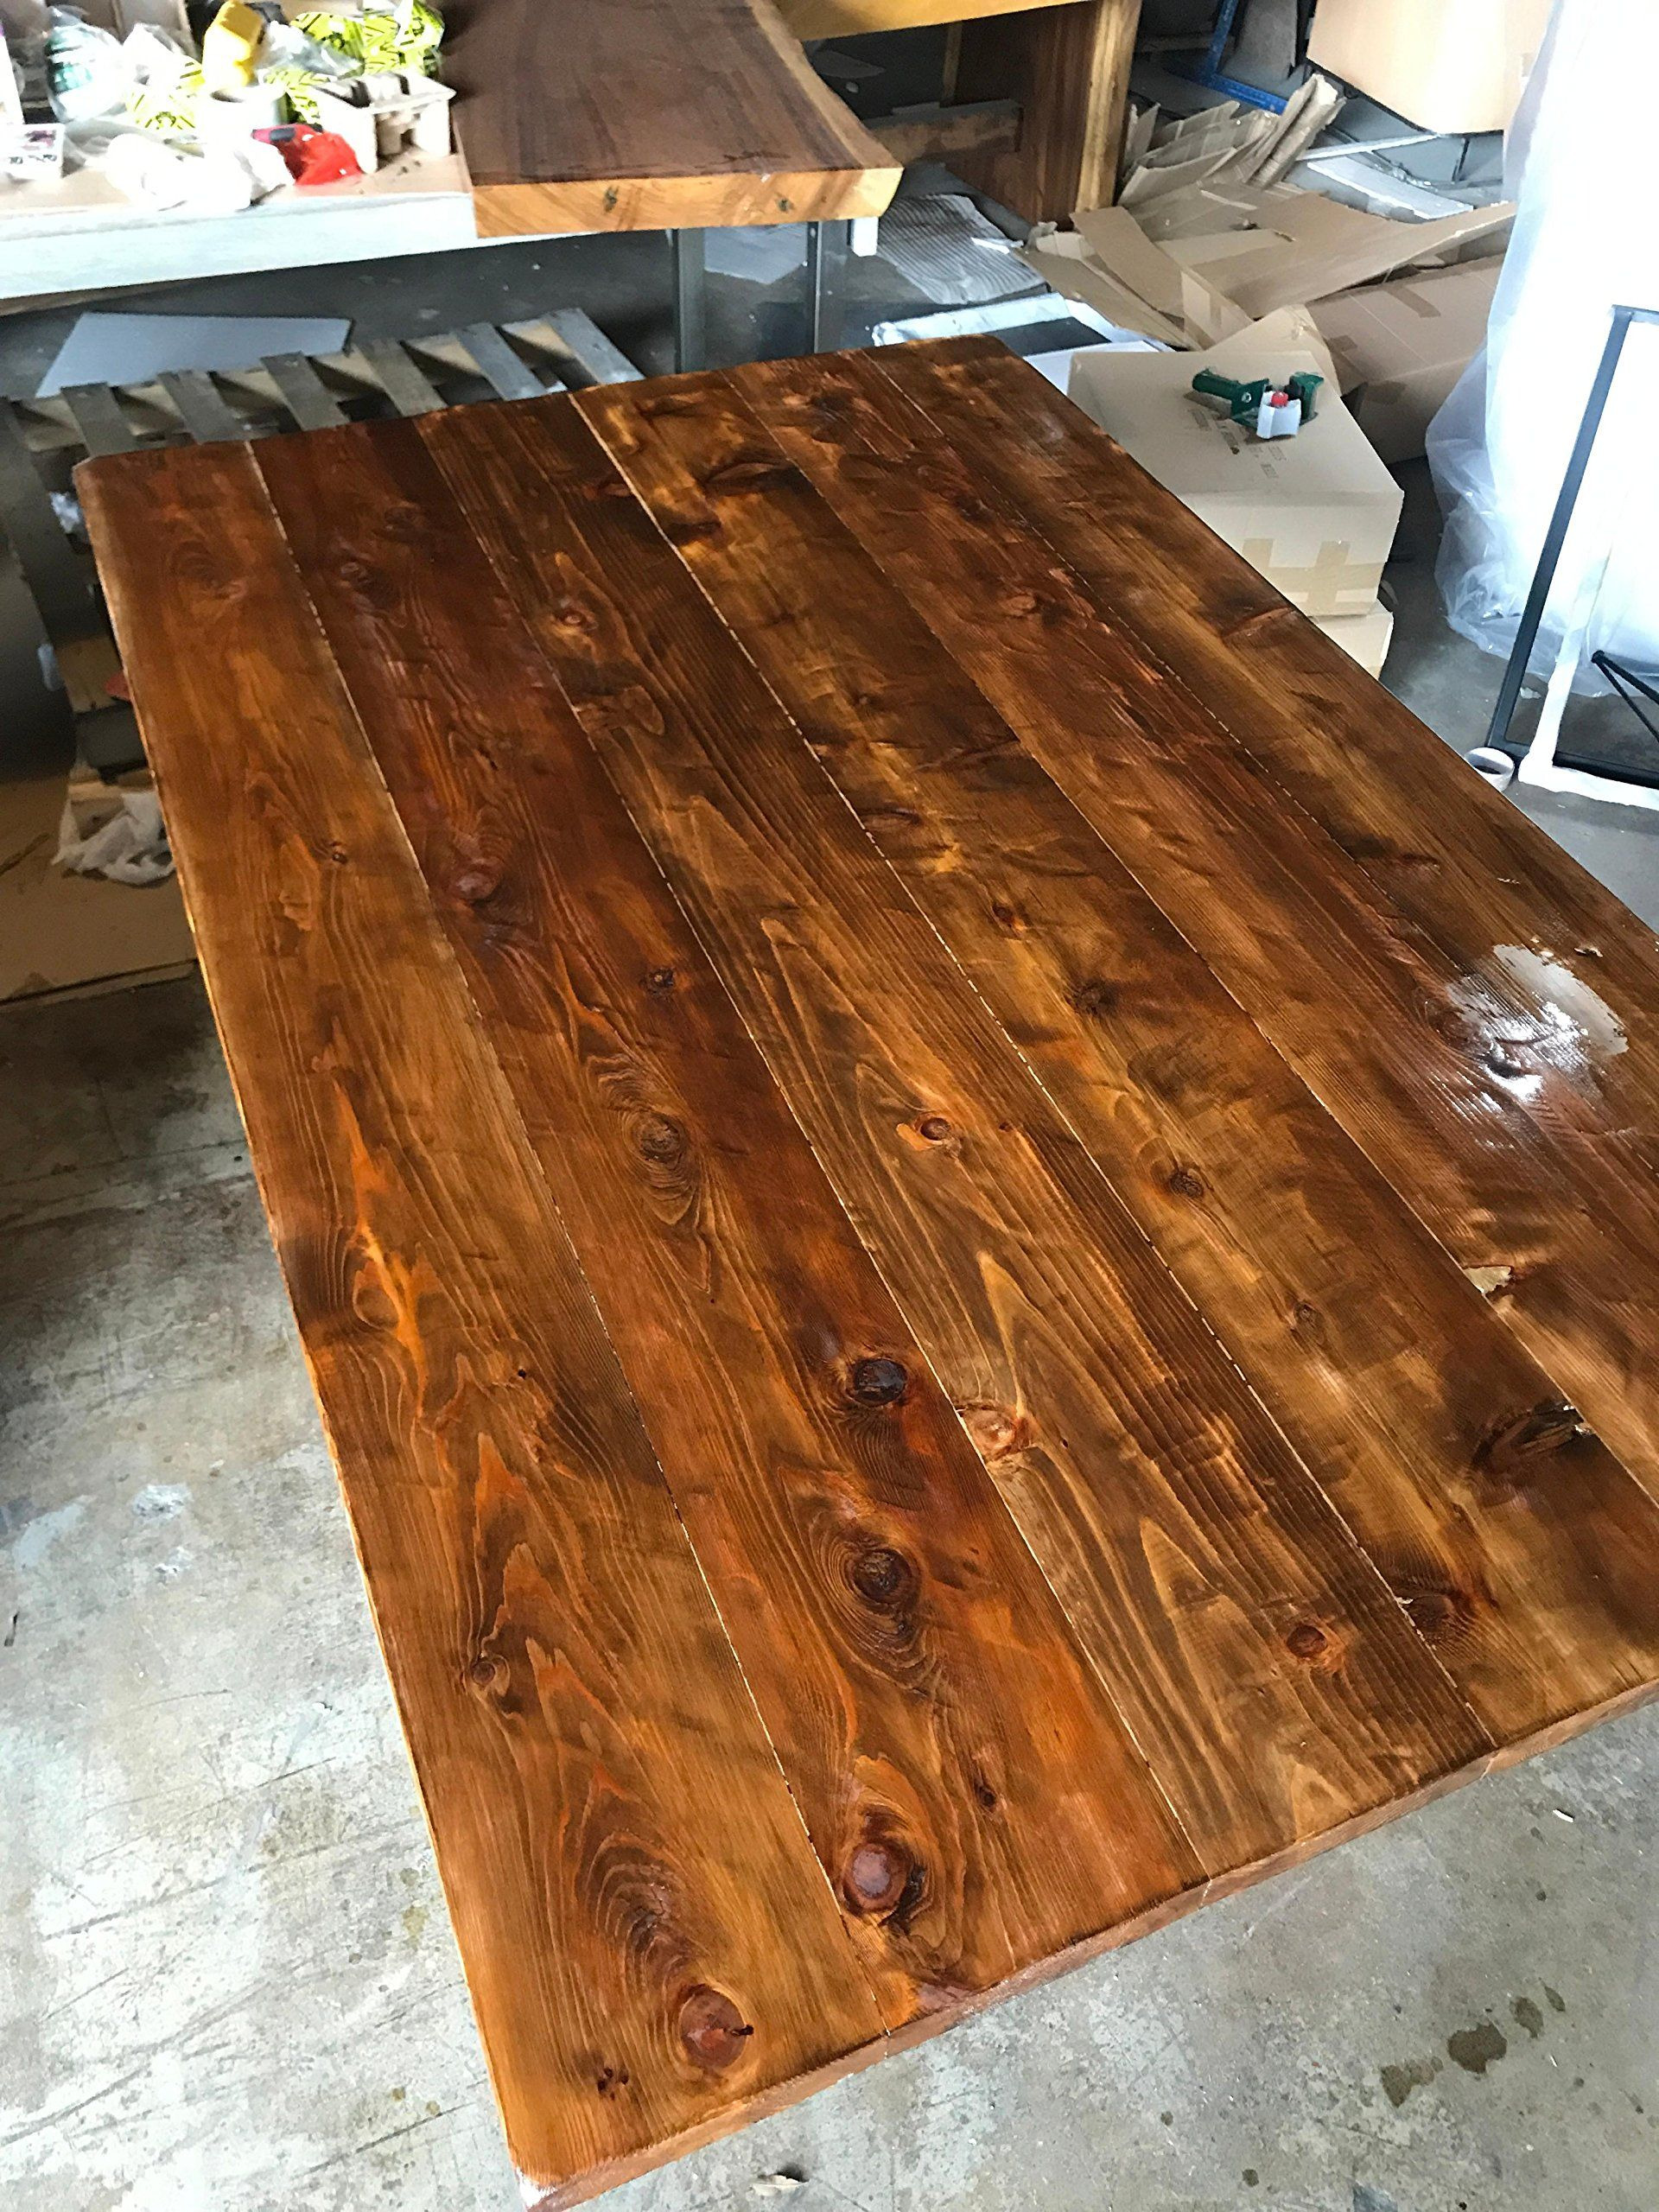 Solid Wood Furniture Kits Best Of Umbuz solid Reclaimed Wood